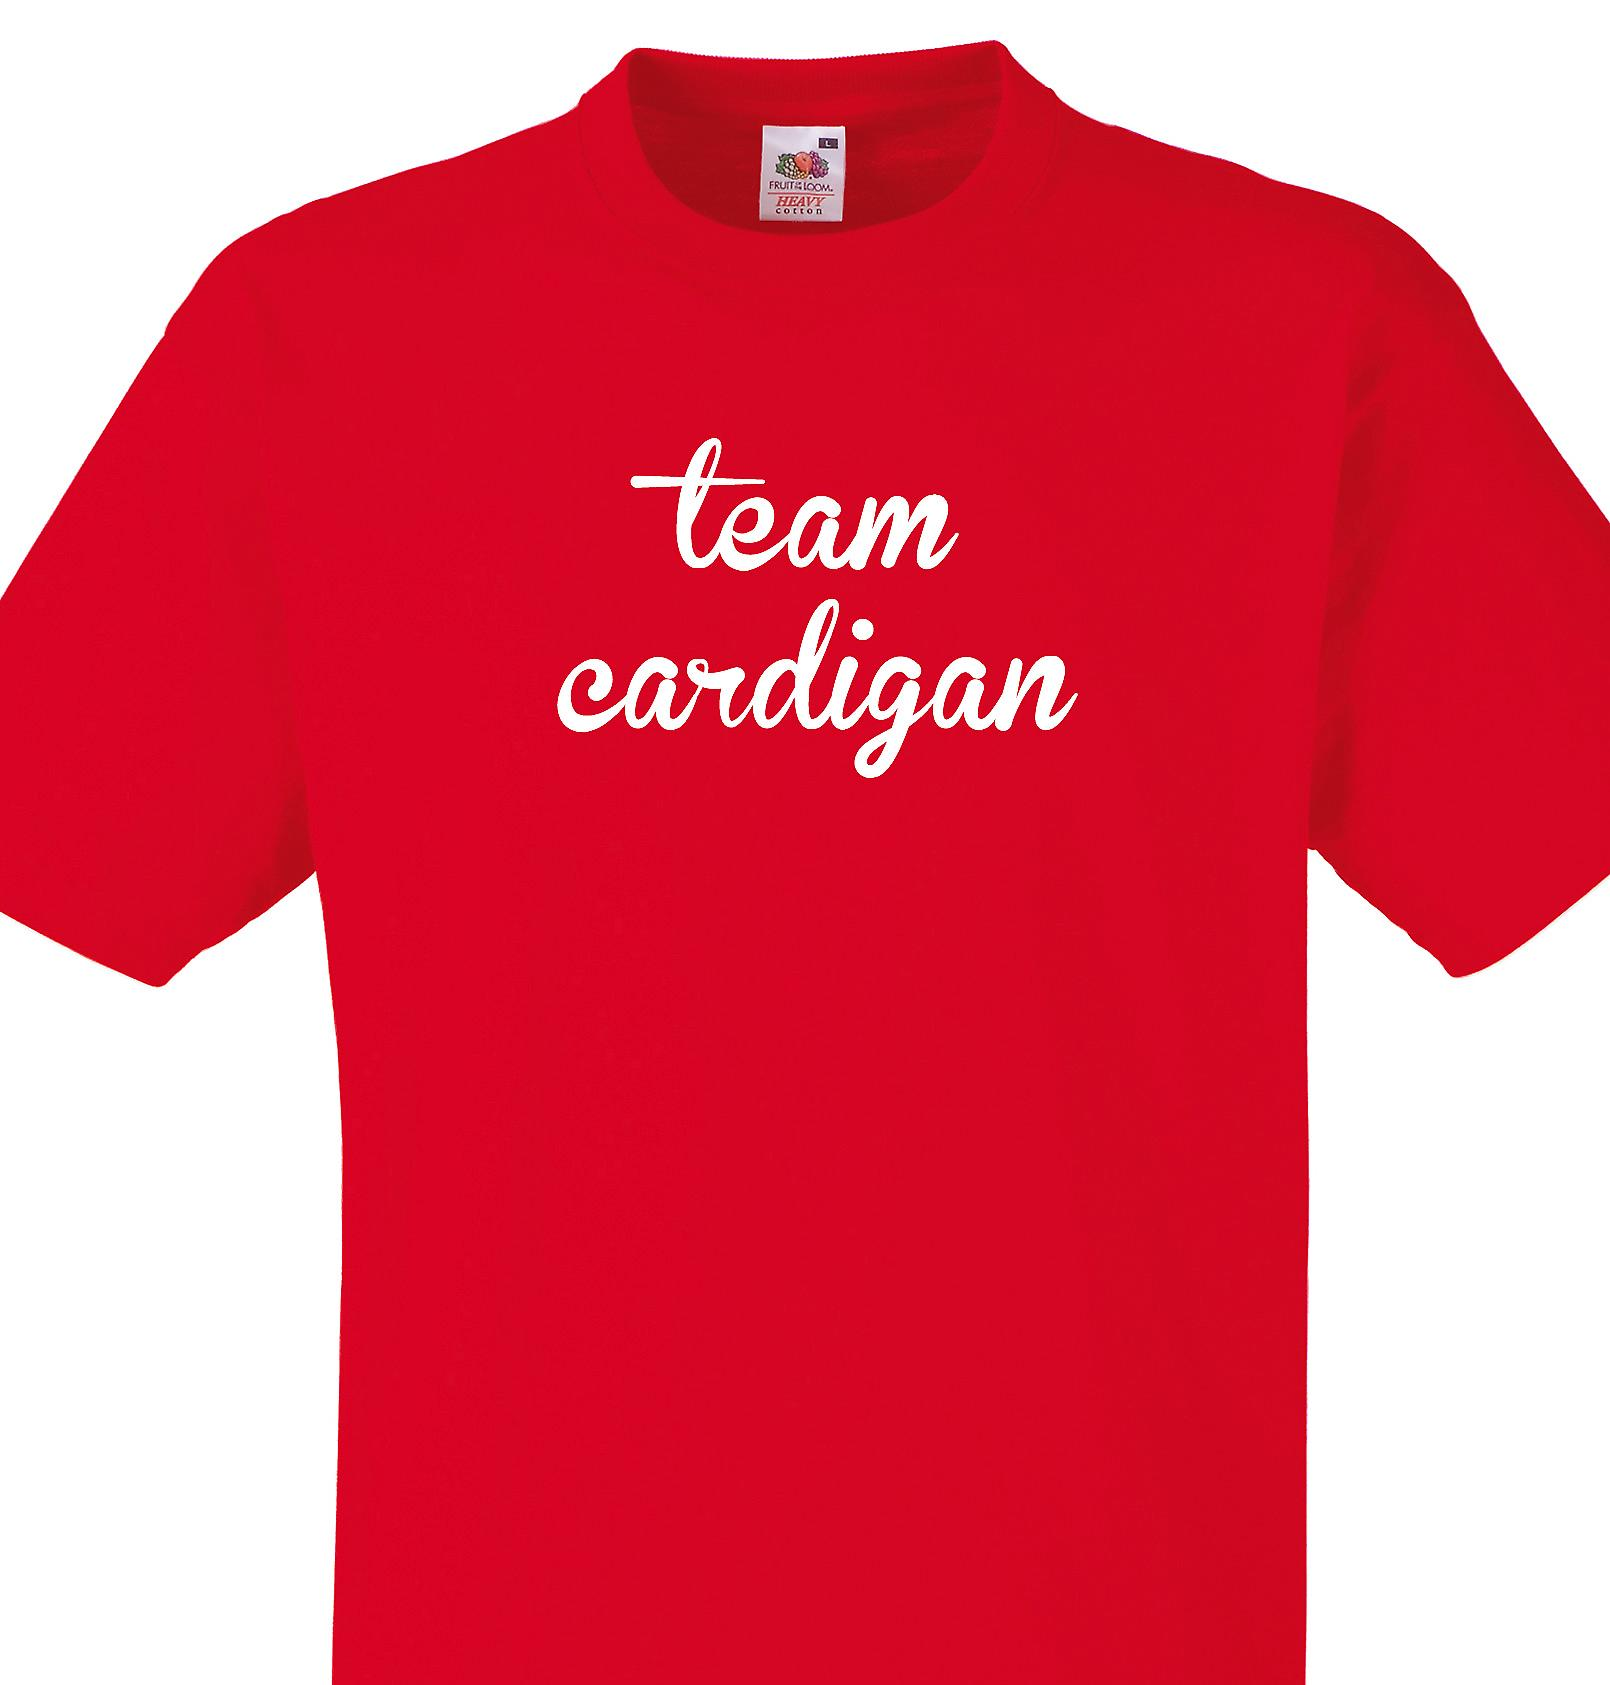 Team Cardigan Red T shirt